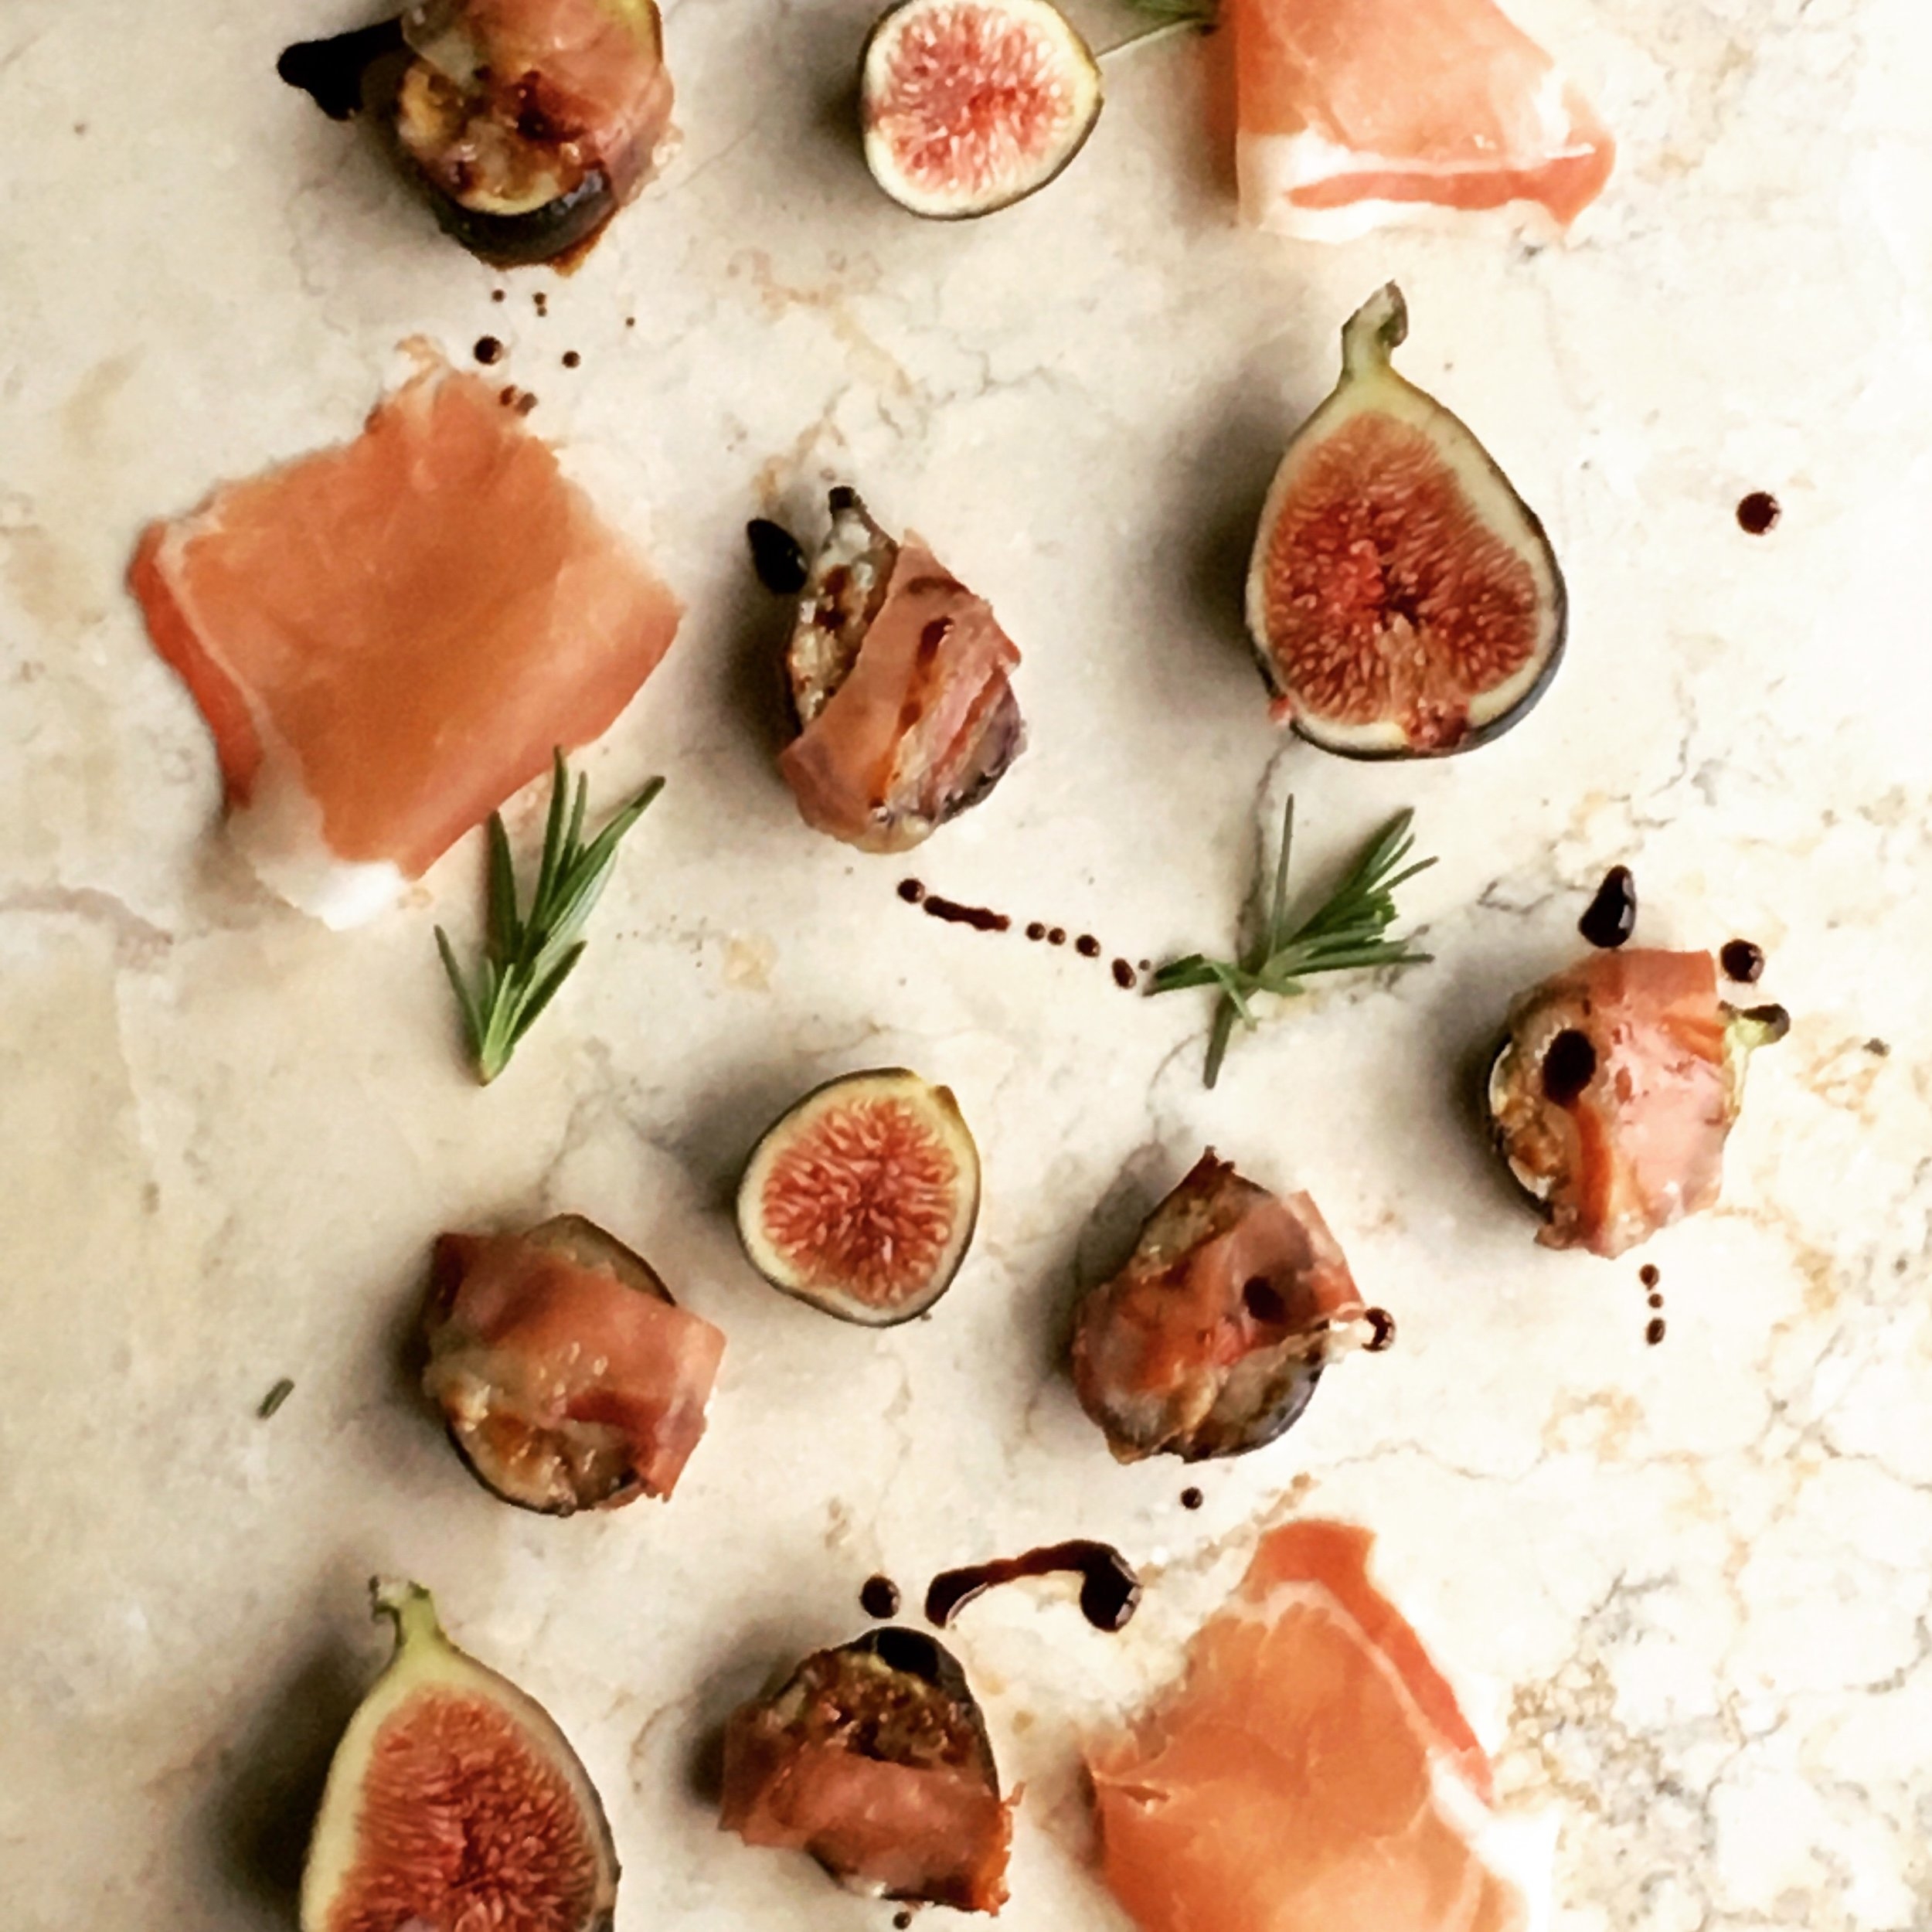 food styling and photography by Susan Reid